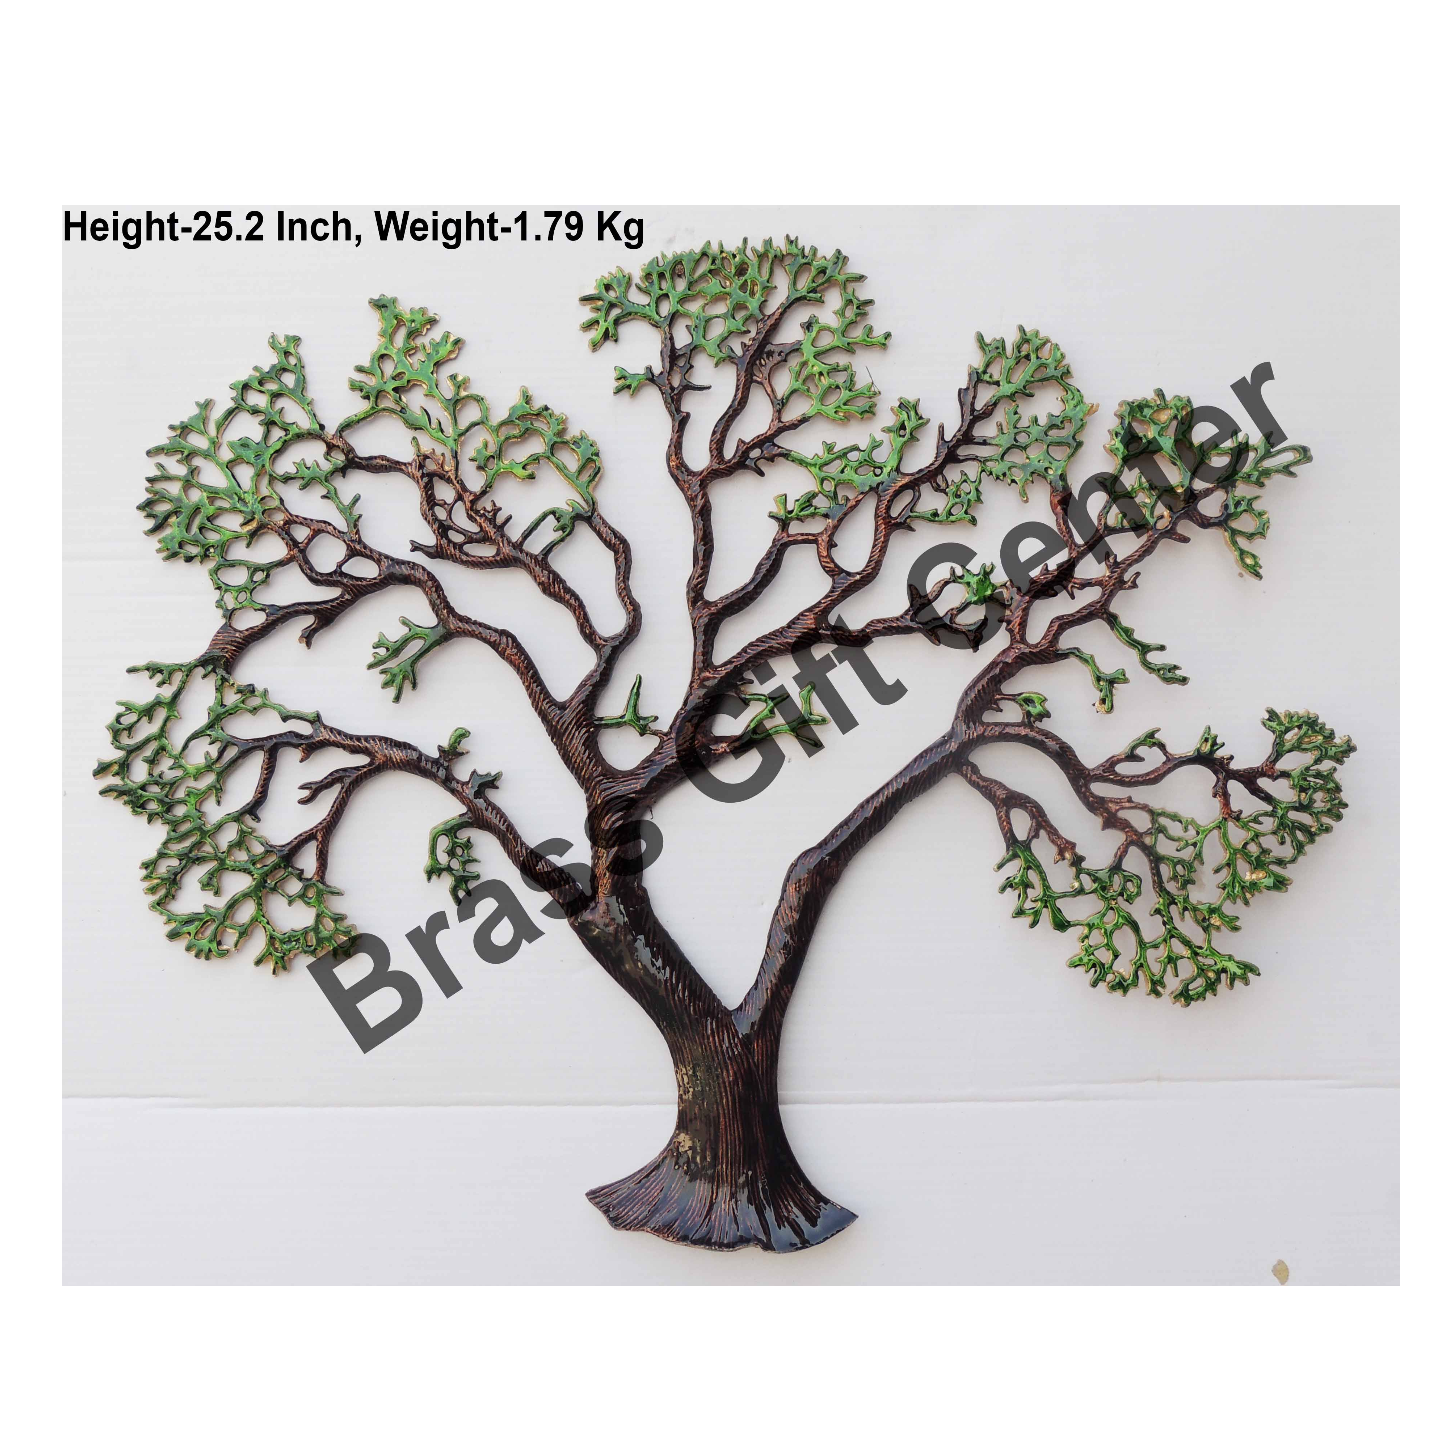 Wall Decorative Aluminium Tree - 32 Inch  (Z123 F)